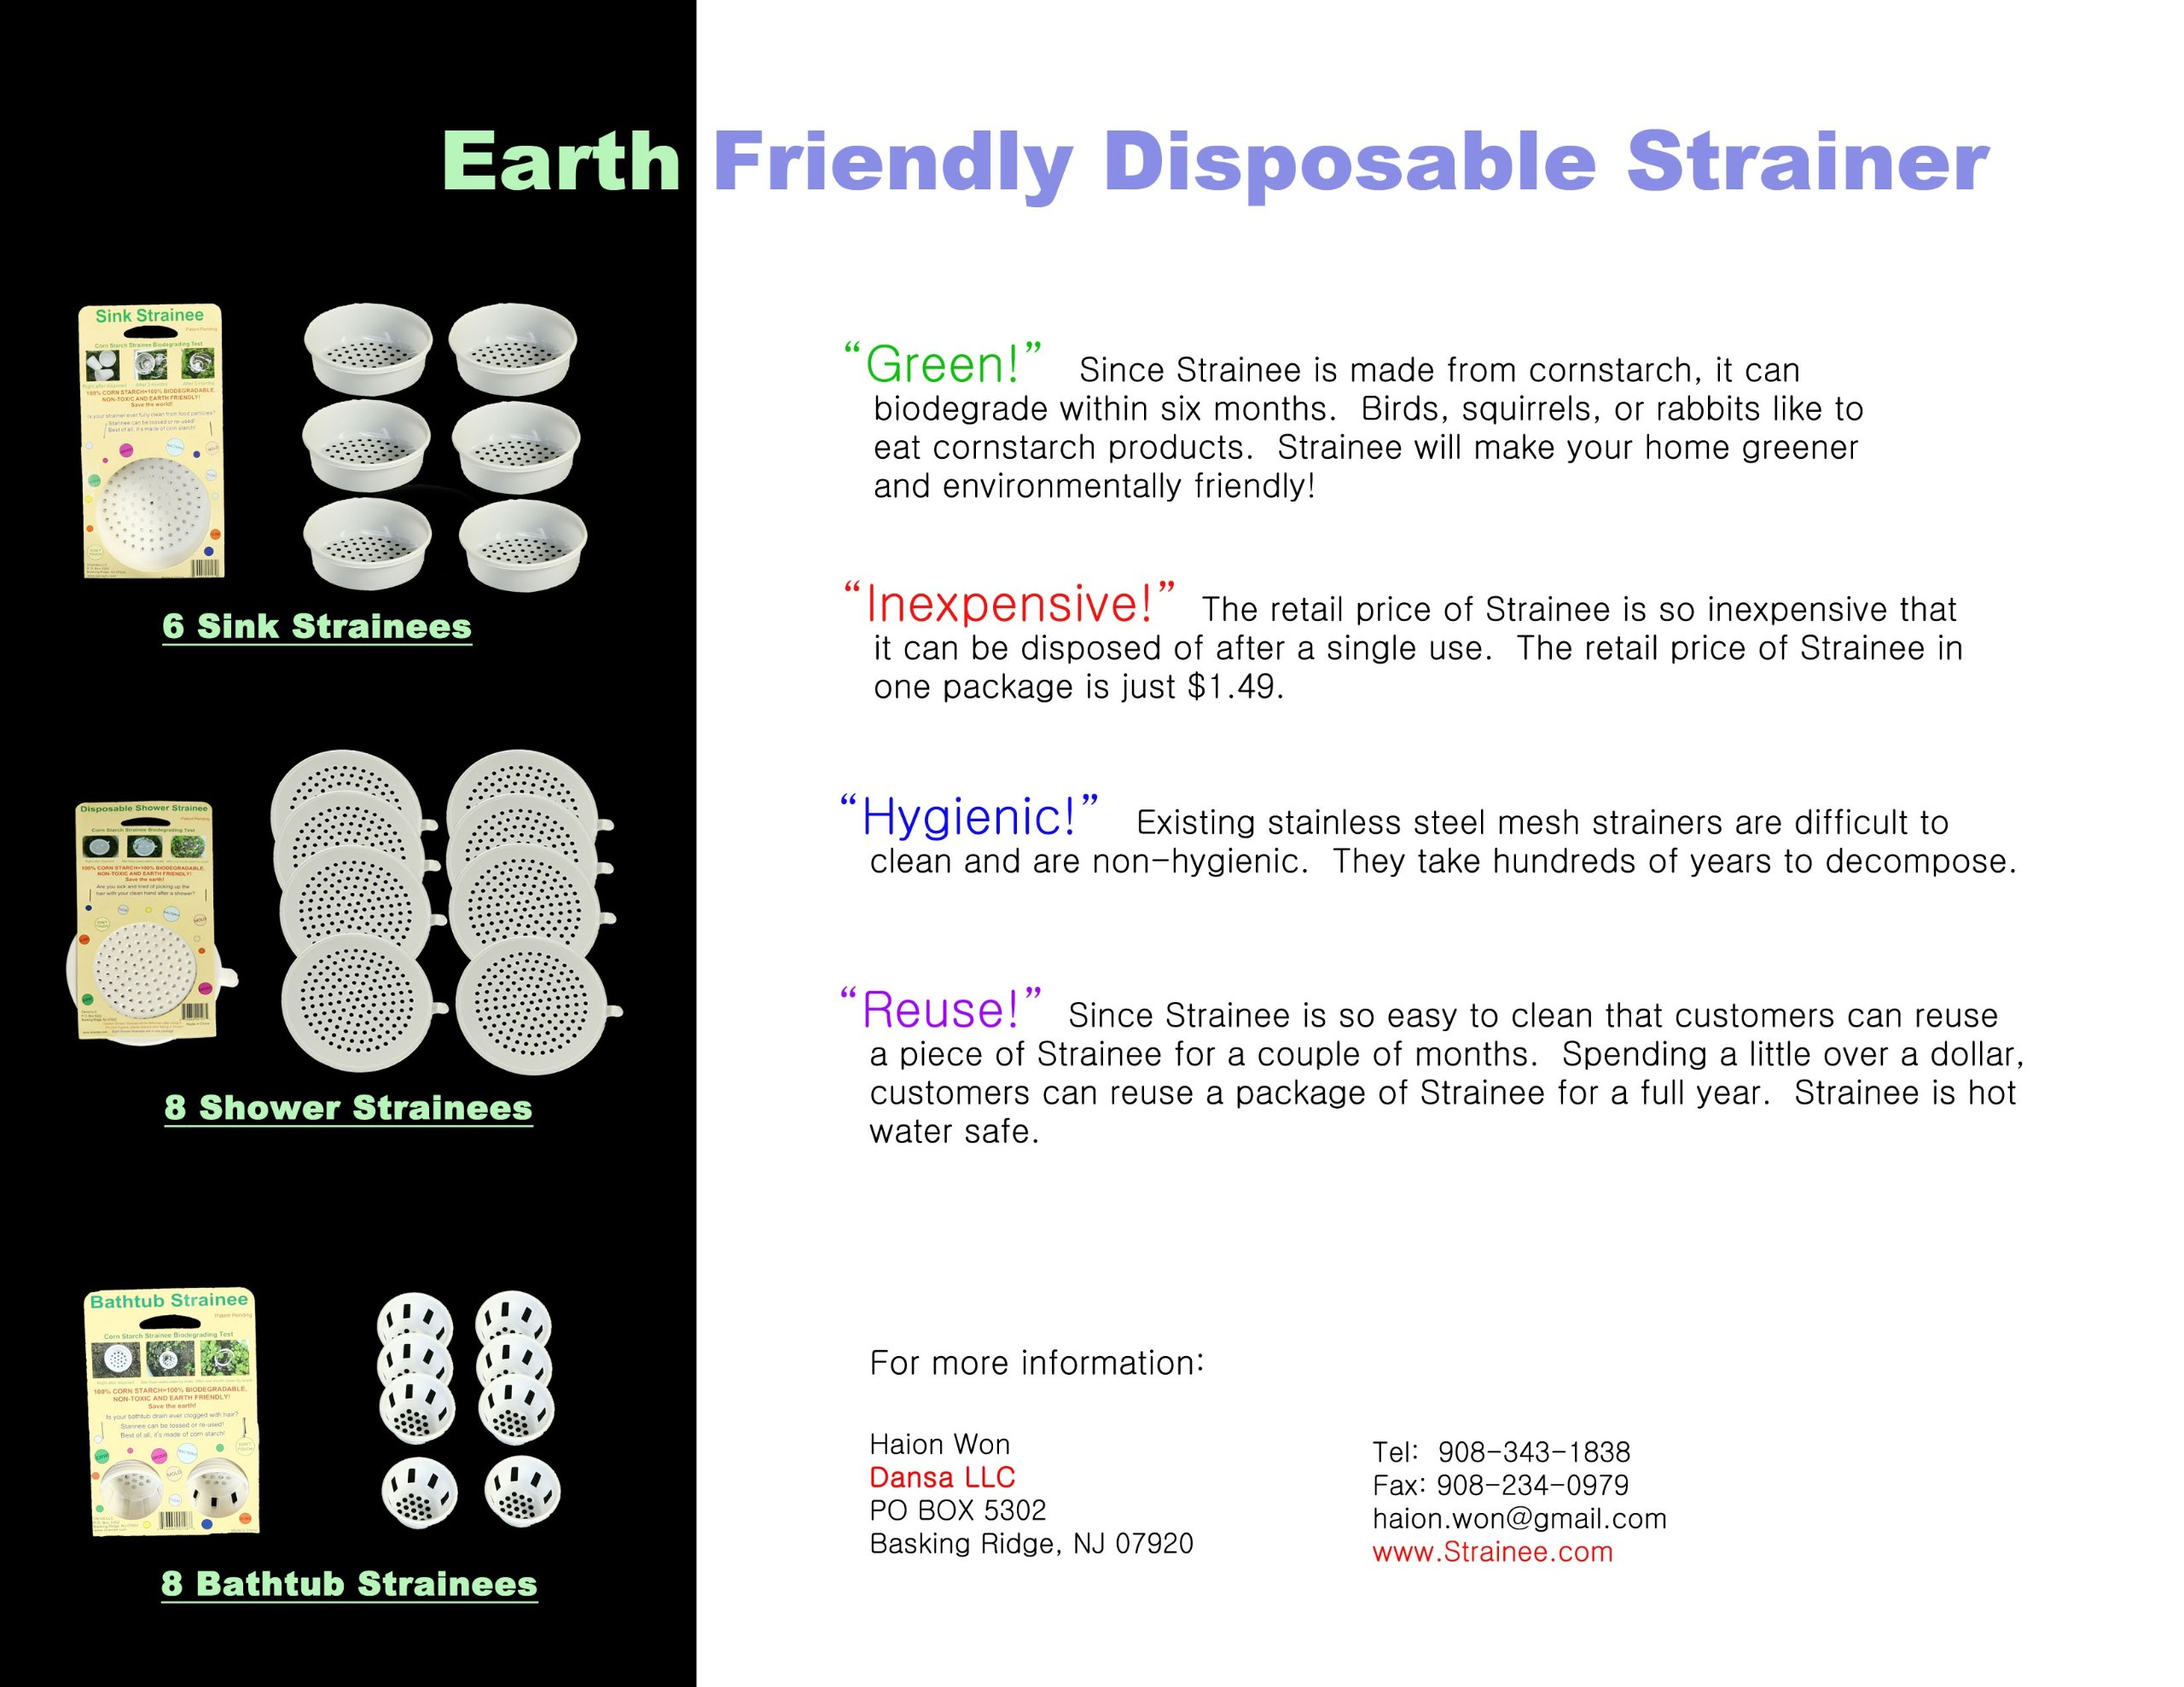 Bathtub Strainee 8 Pack Sink Strainer. 100% Corn Starch Means 100% Biodegradable, Non Toxic and Earth Friendly.